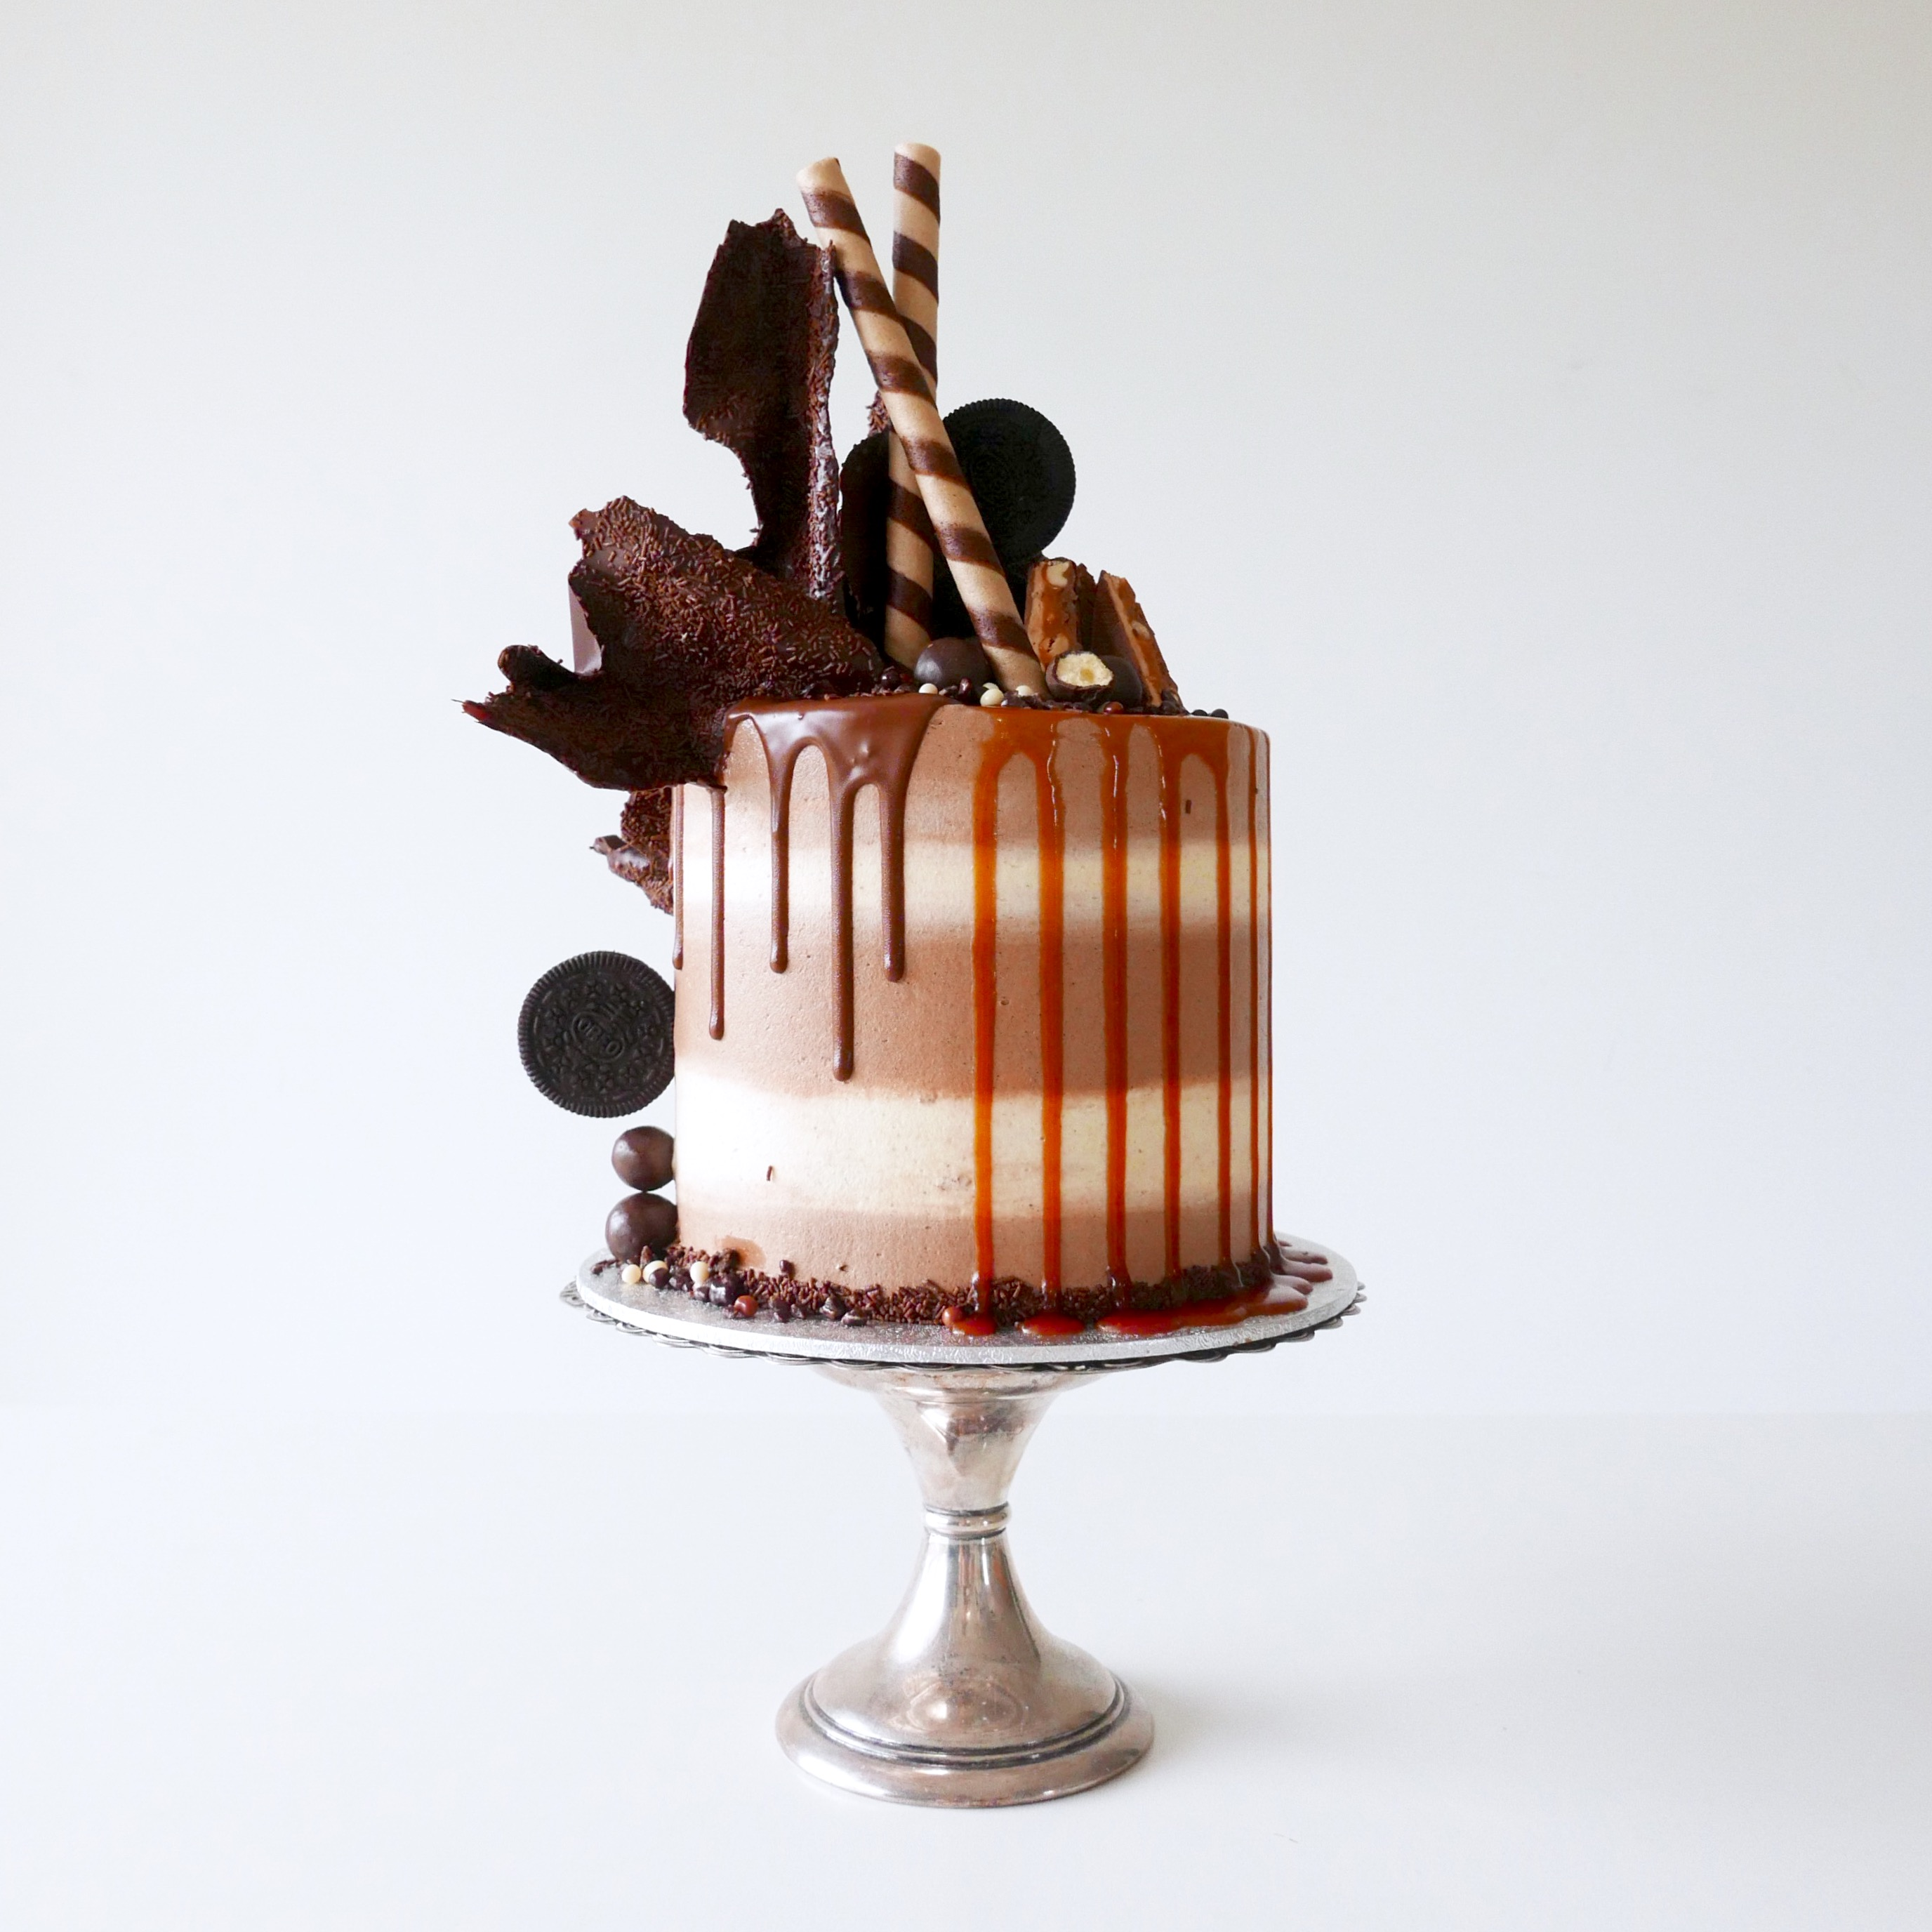 Best Icing For Caramel Mud Cake